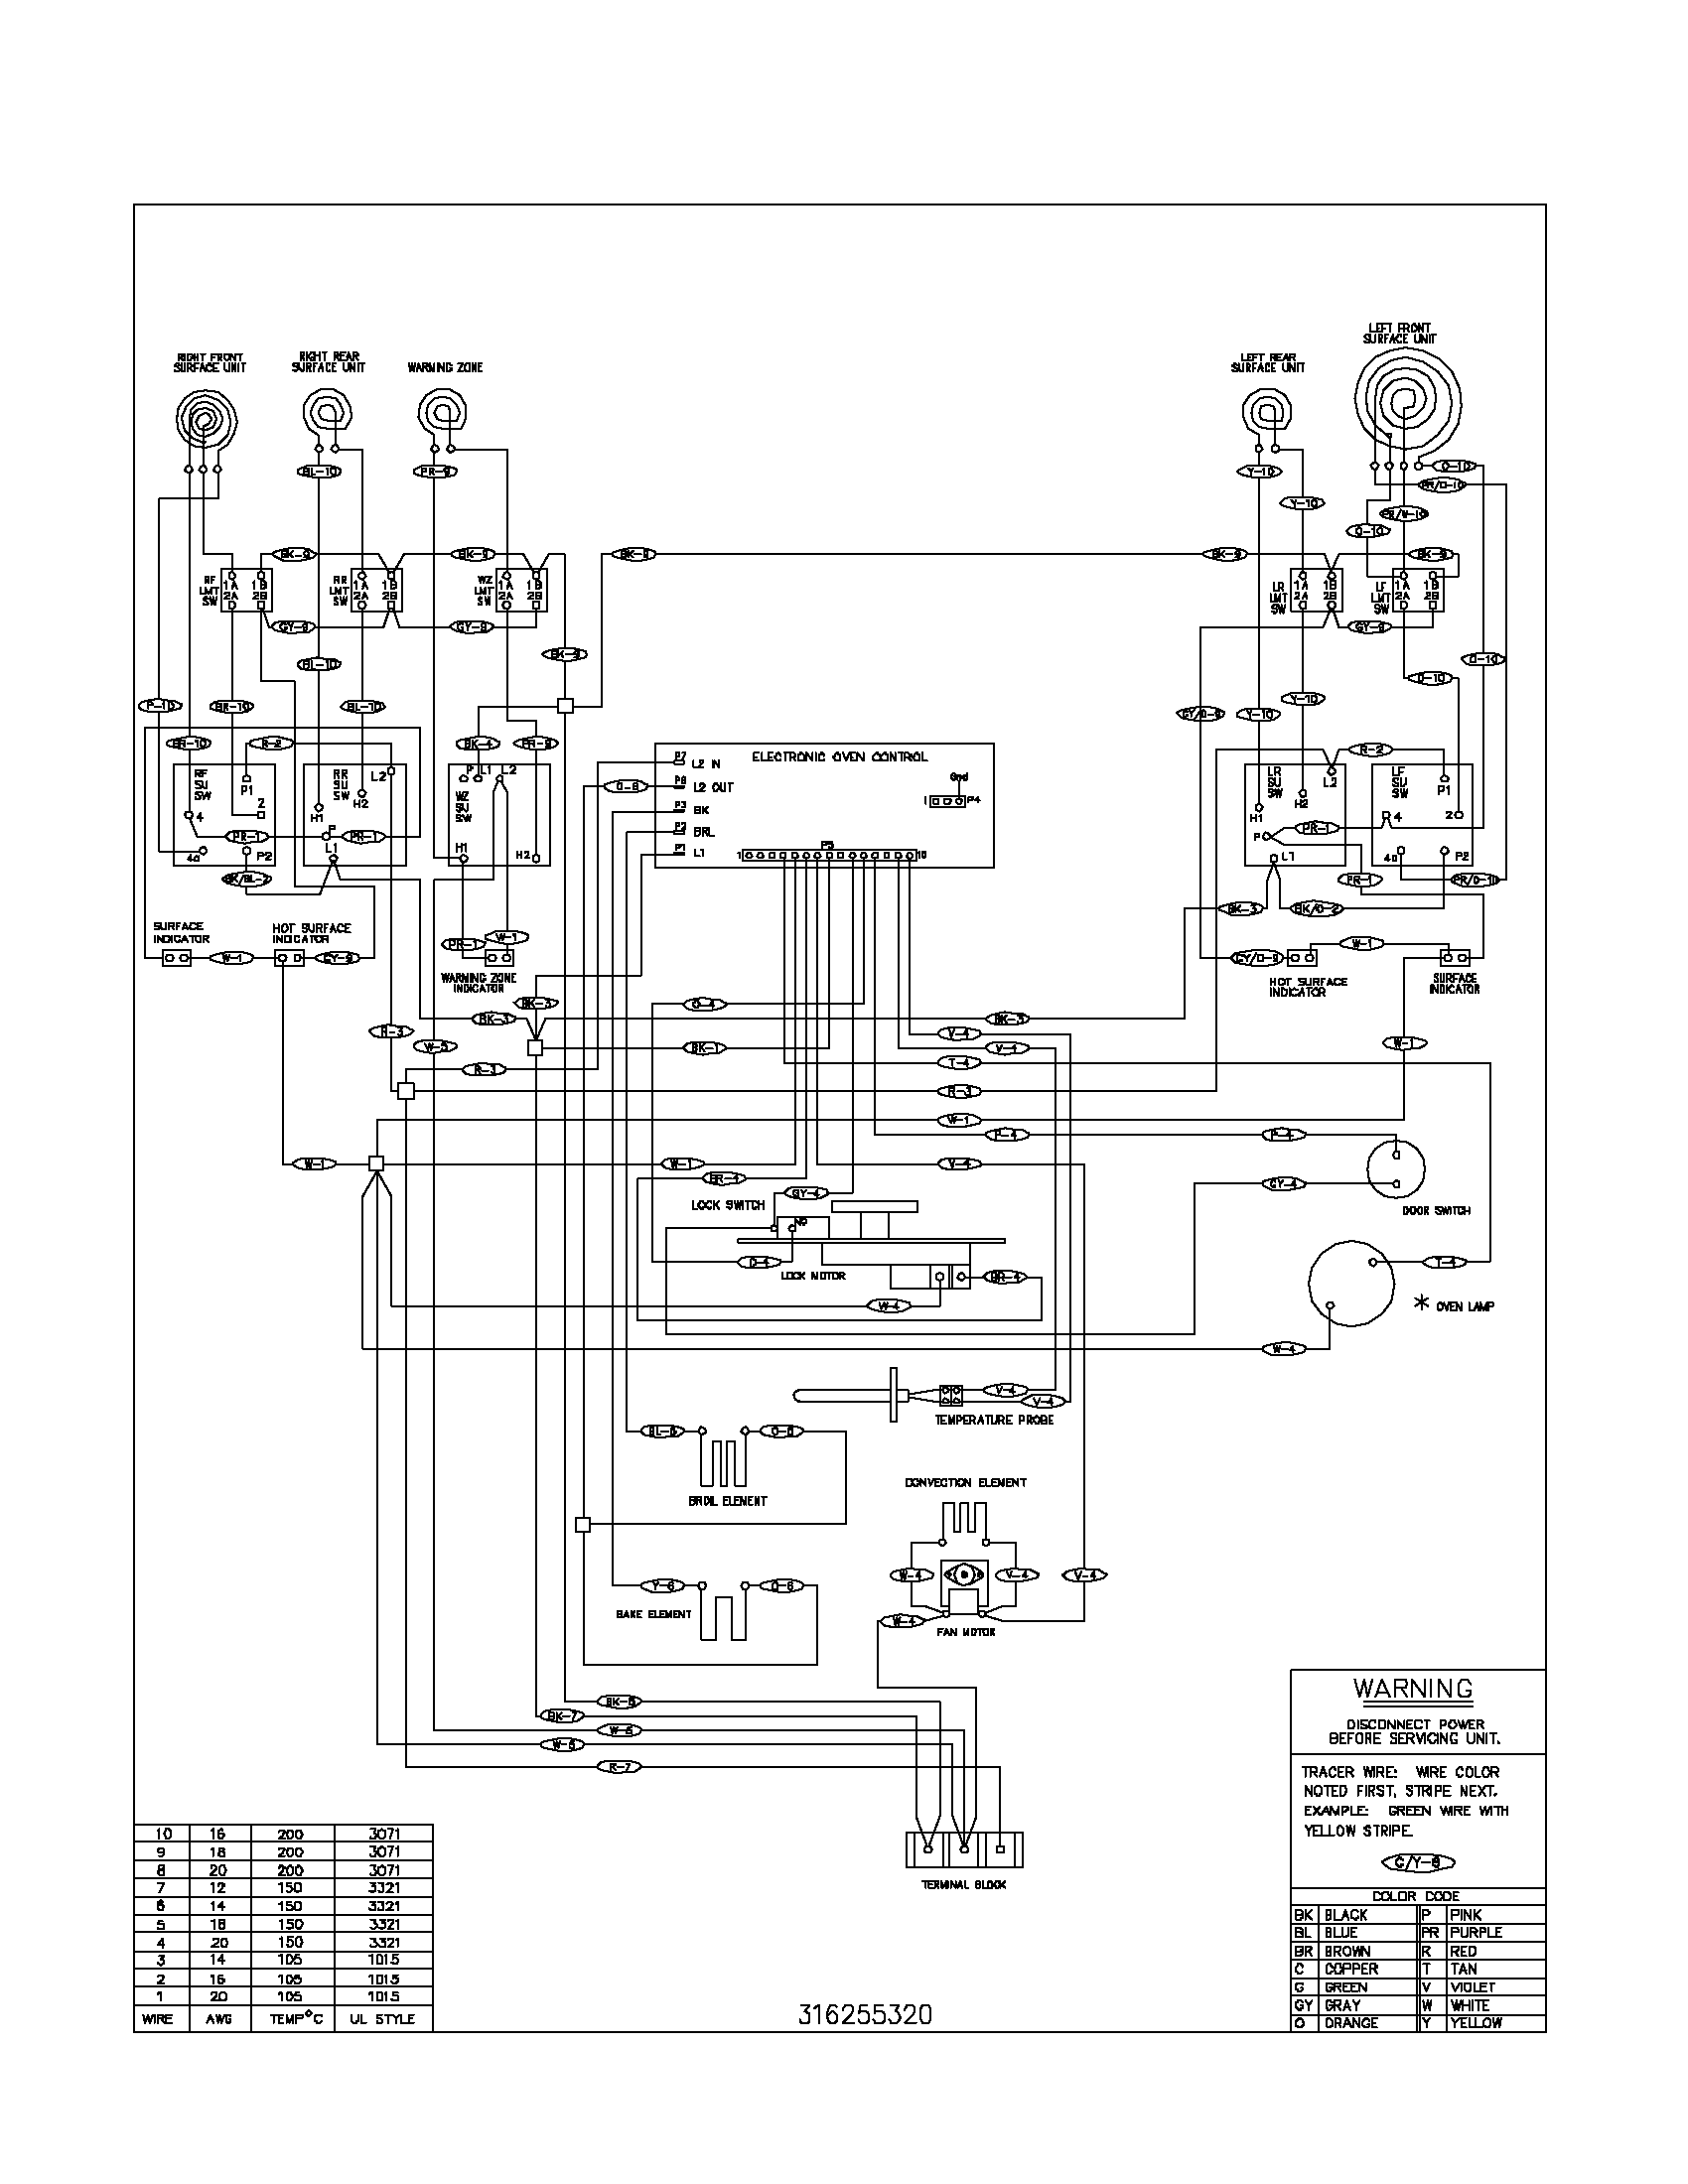 wiring diagram parts whirlpool fefl88acc electric range timer stove clocks and Range Plug Wiring Diagram at crackthecode.co